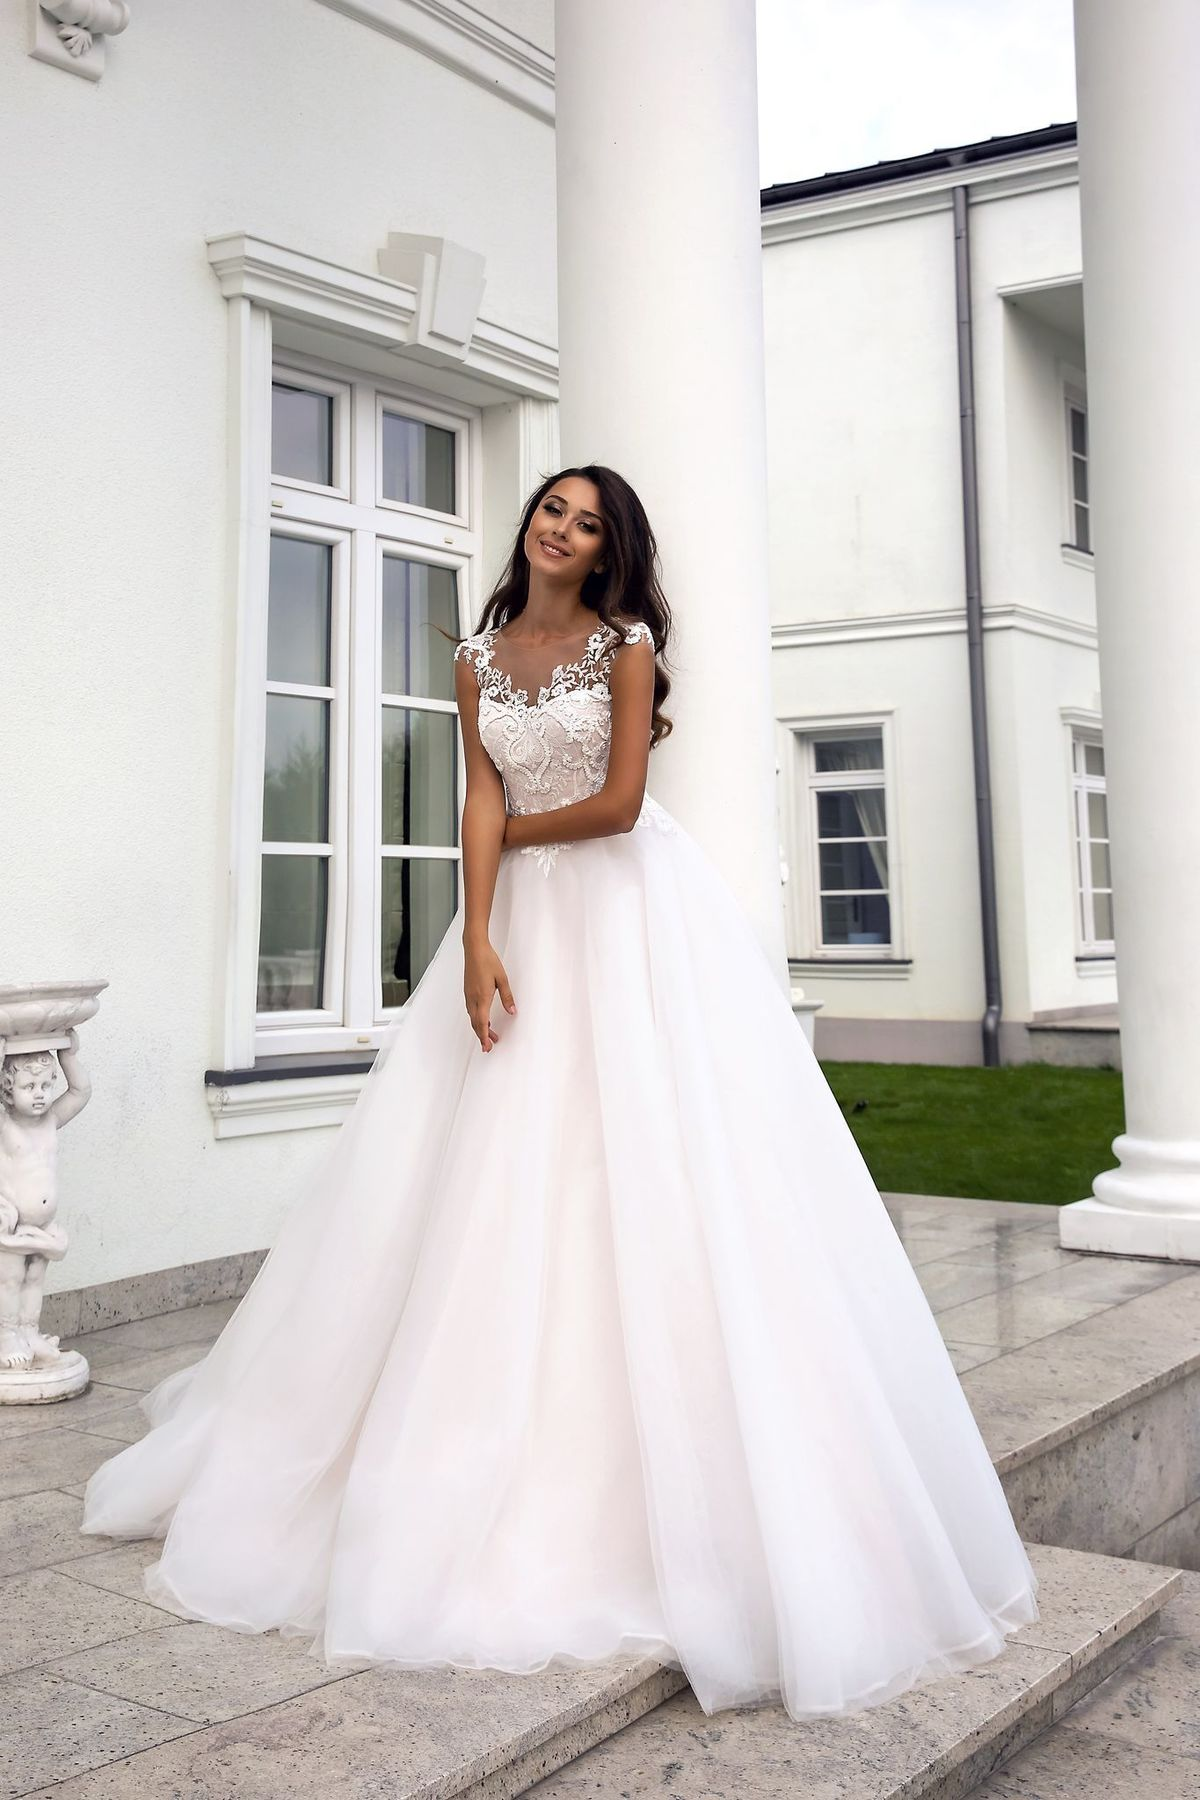 Vivian's Bridal 2018 Lovely Pink Lining Wedding Dress Short Cap Sleeve Illusion Lace Button Applique Zipper A-line Bridal Dress